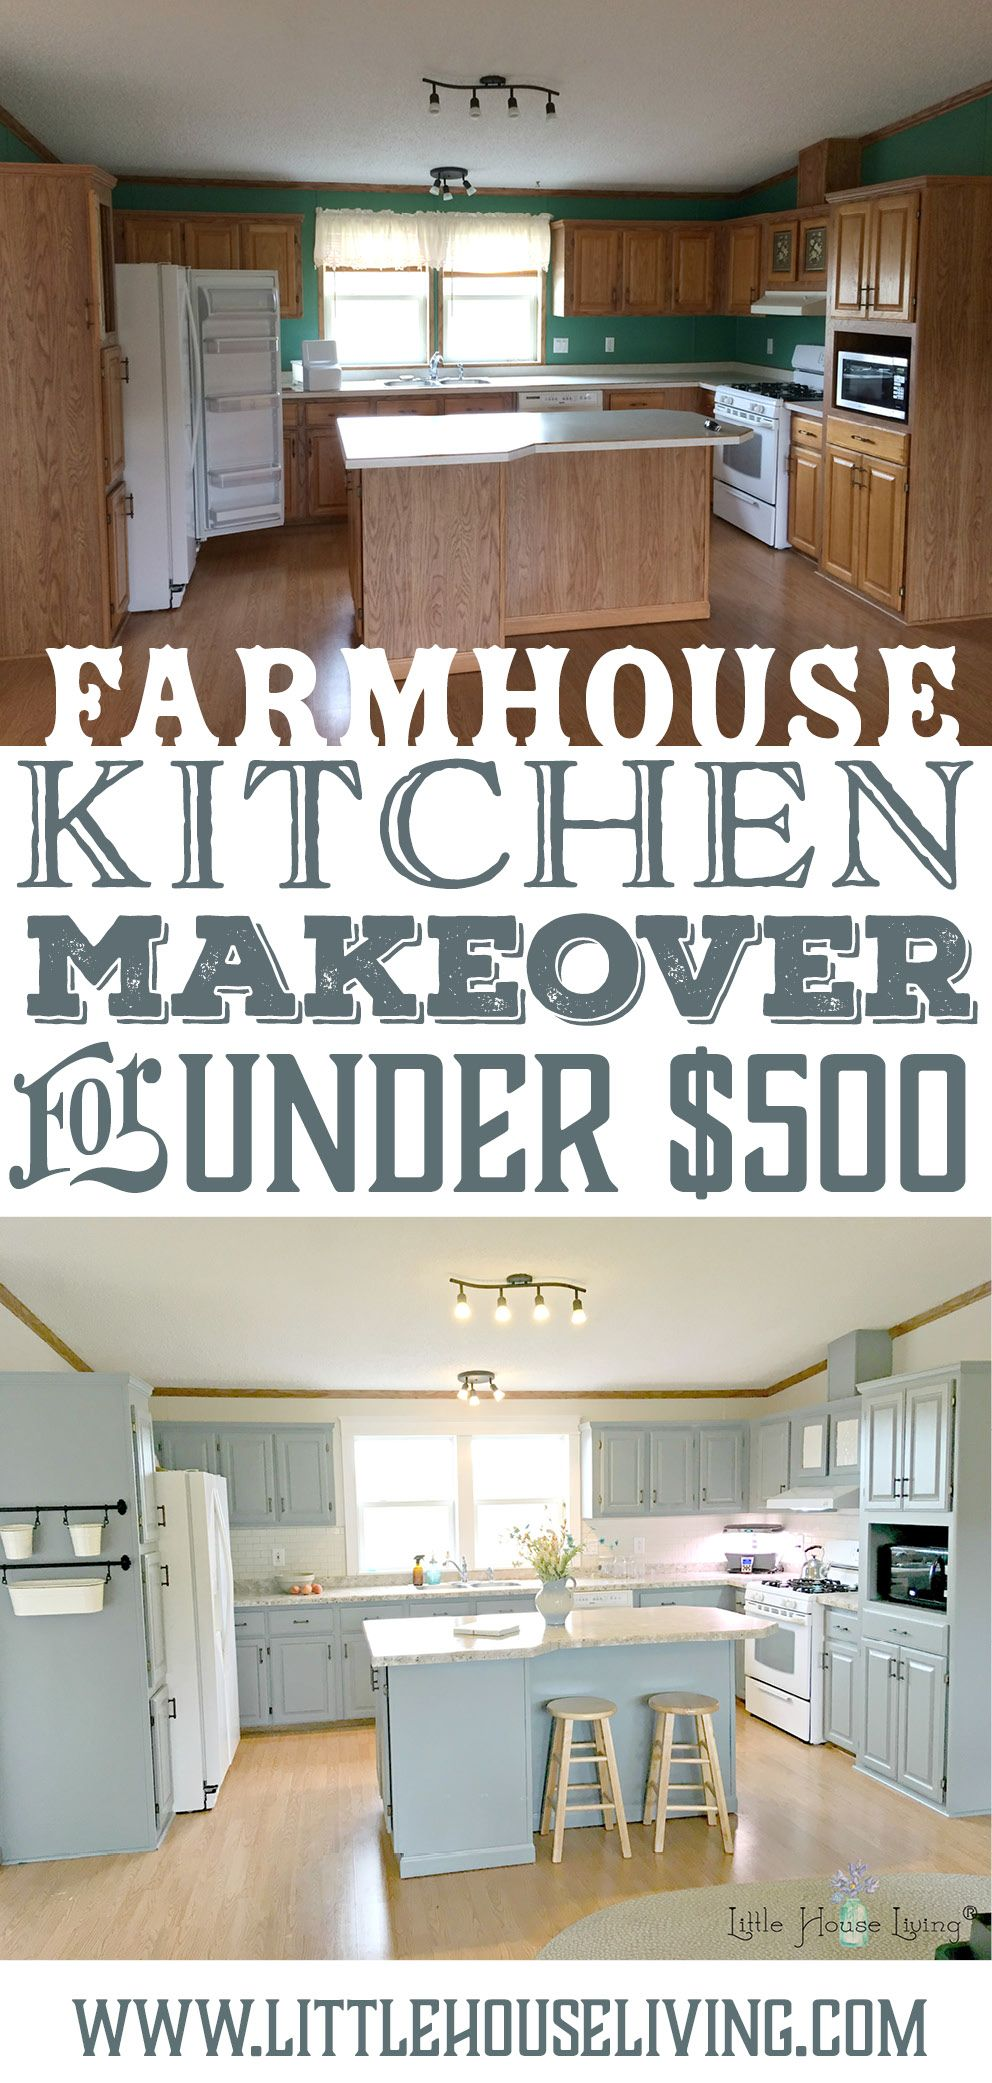 Farmhouse Style Kitchen Makeover For Under 500 House Ideas